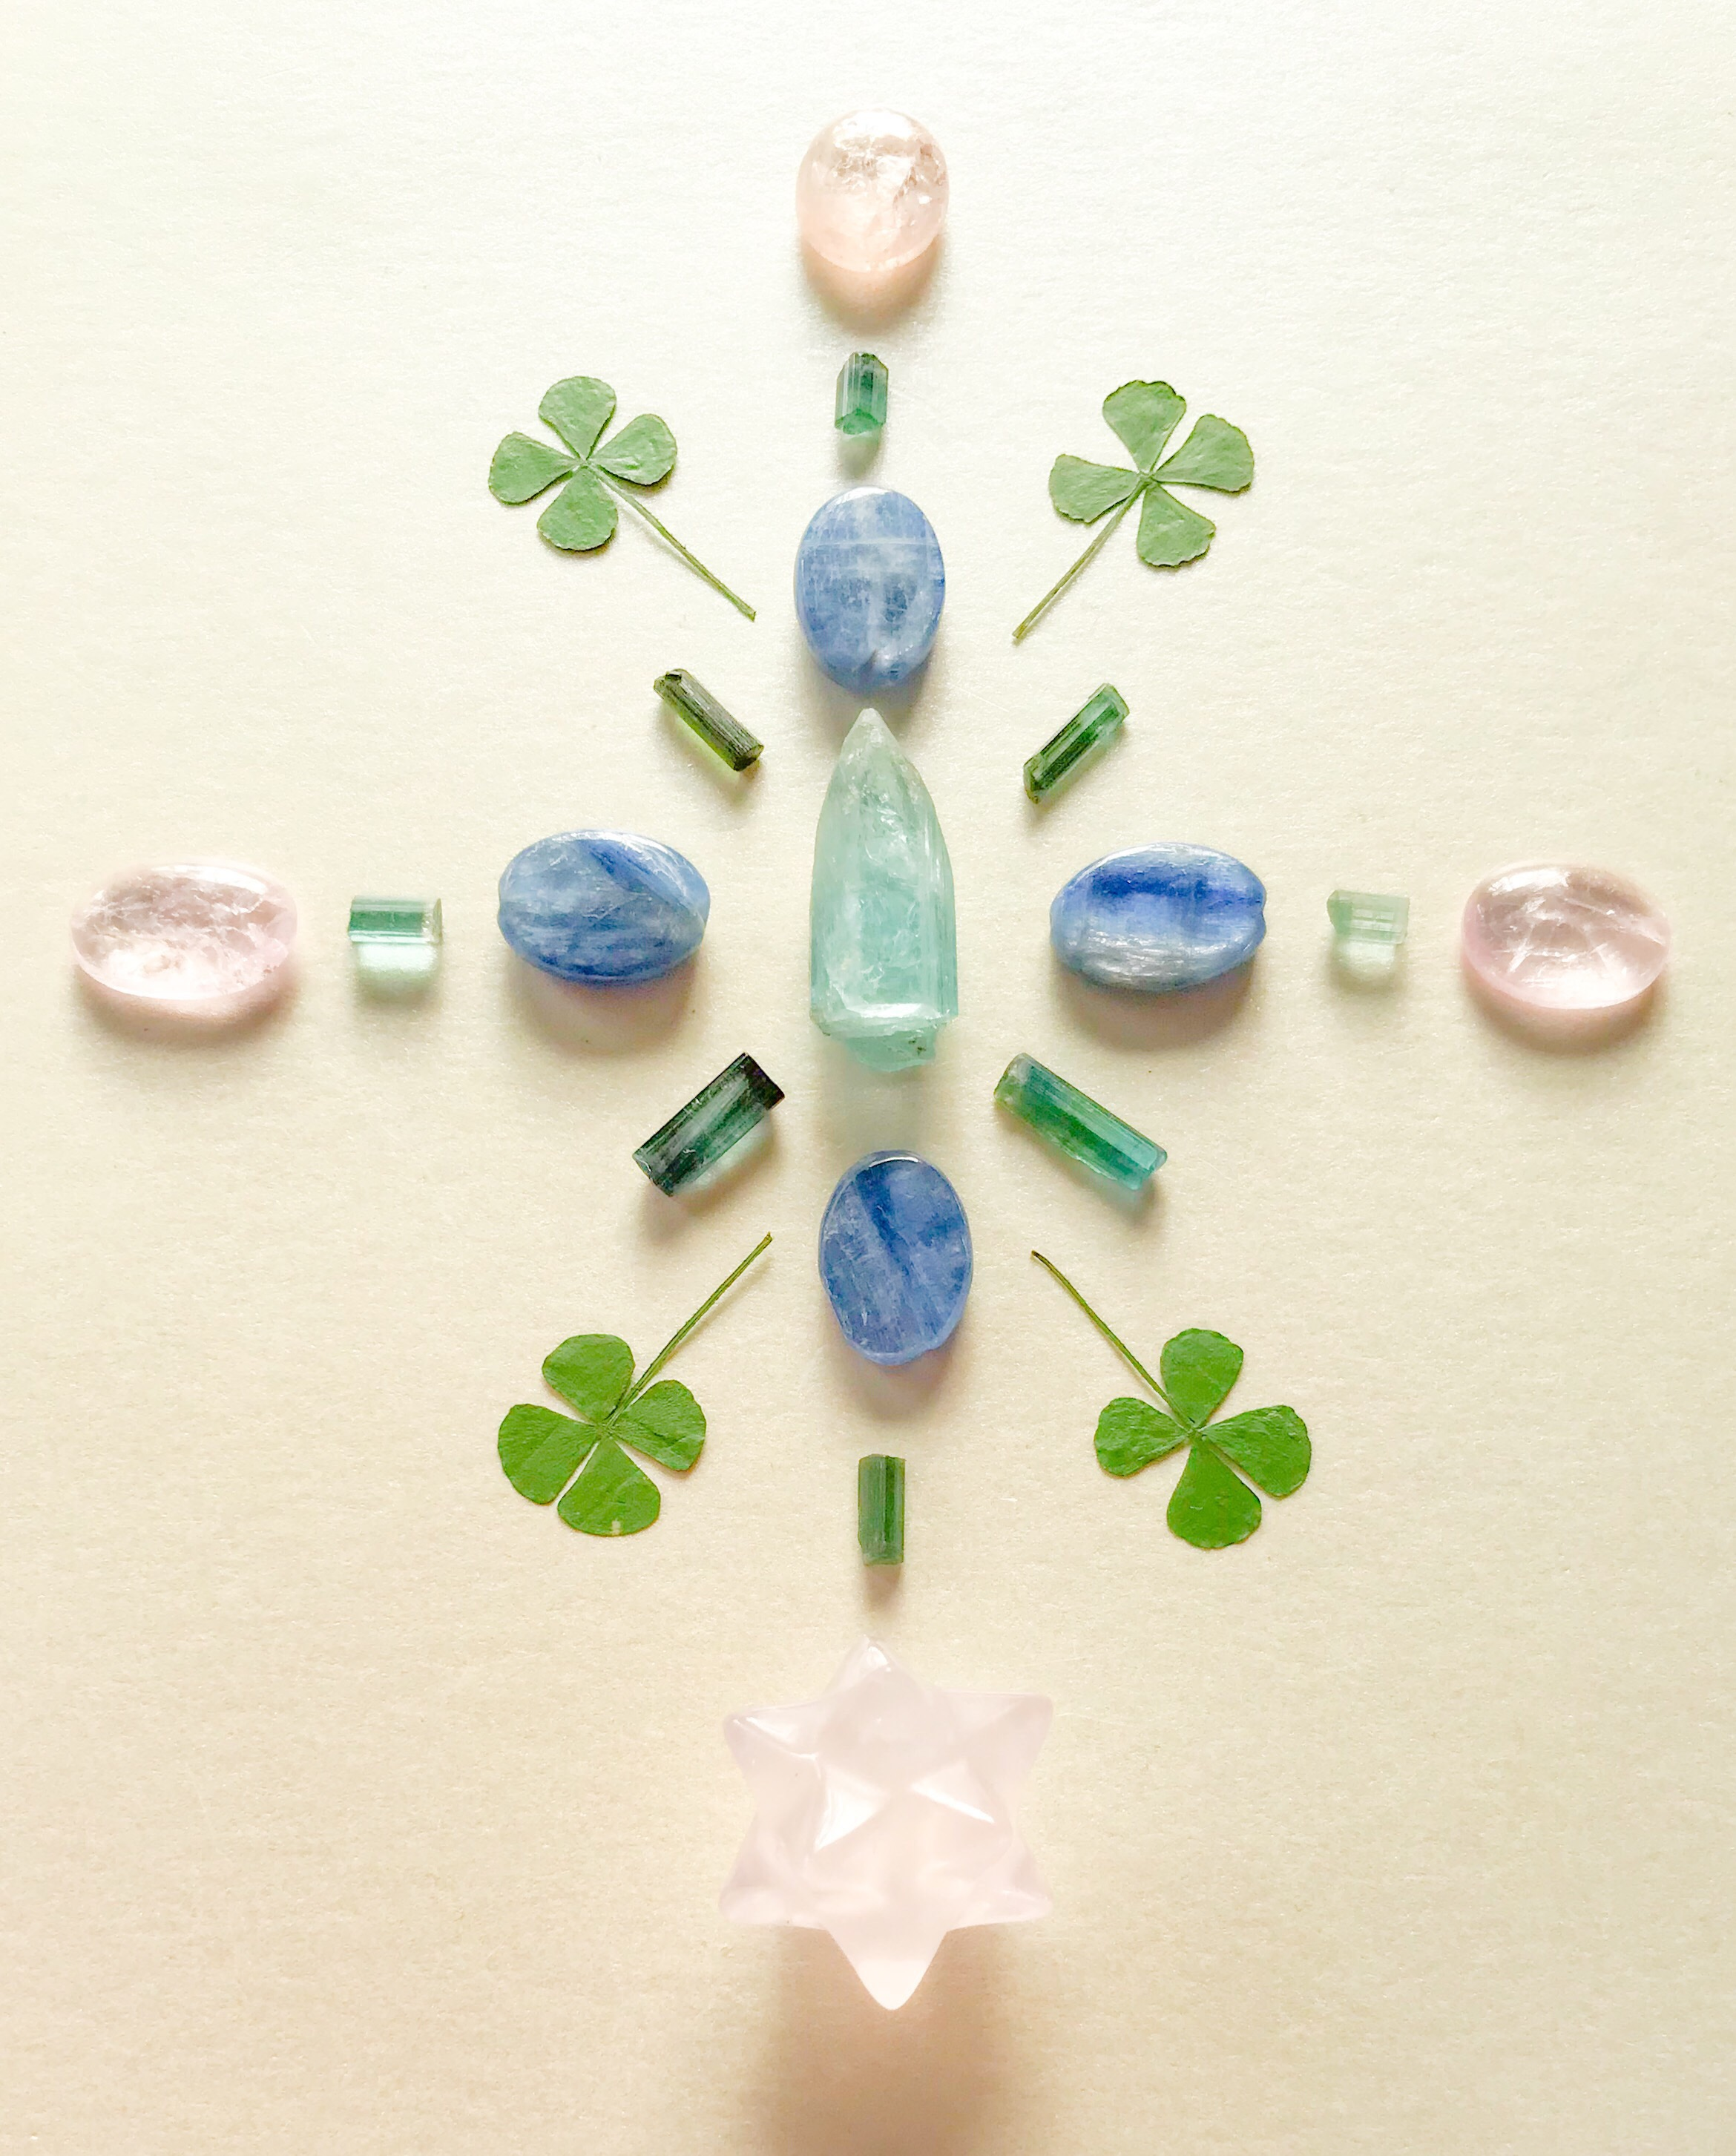 Aquamarine, Indicolite, Kyanite, Morganite, Rose Quartz and Clover